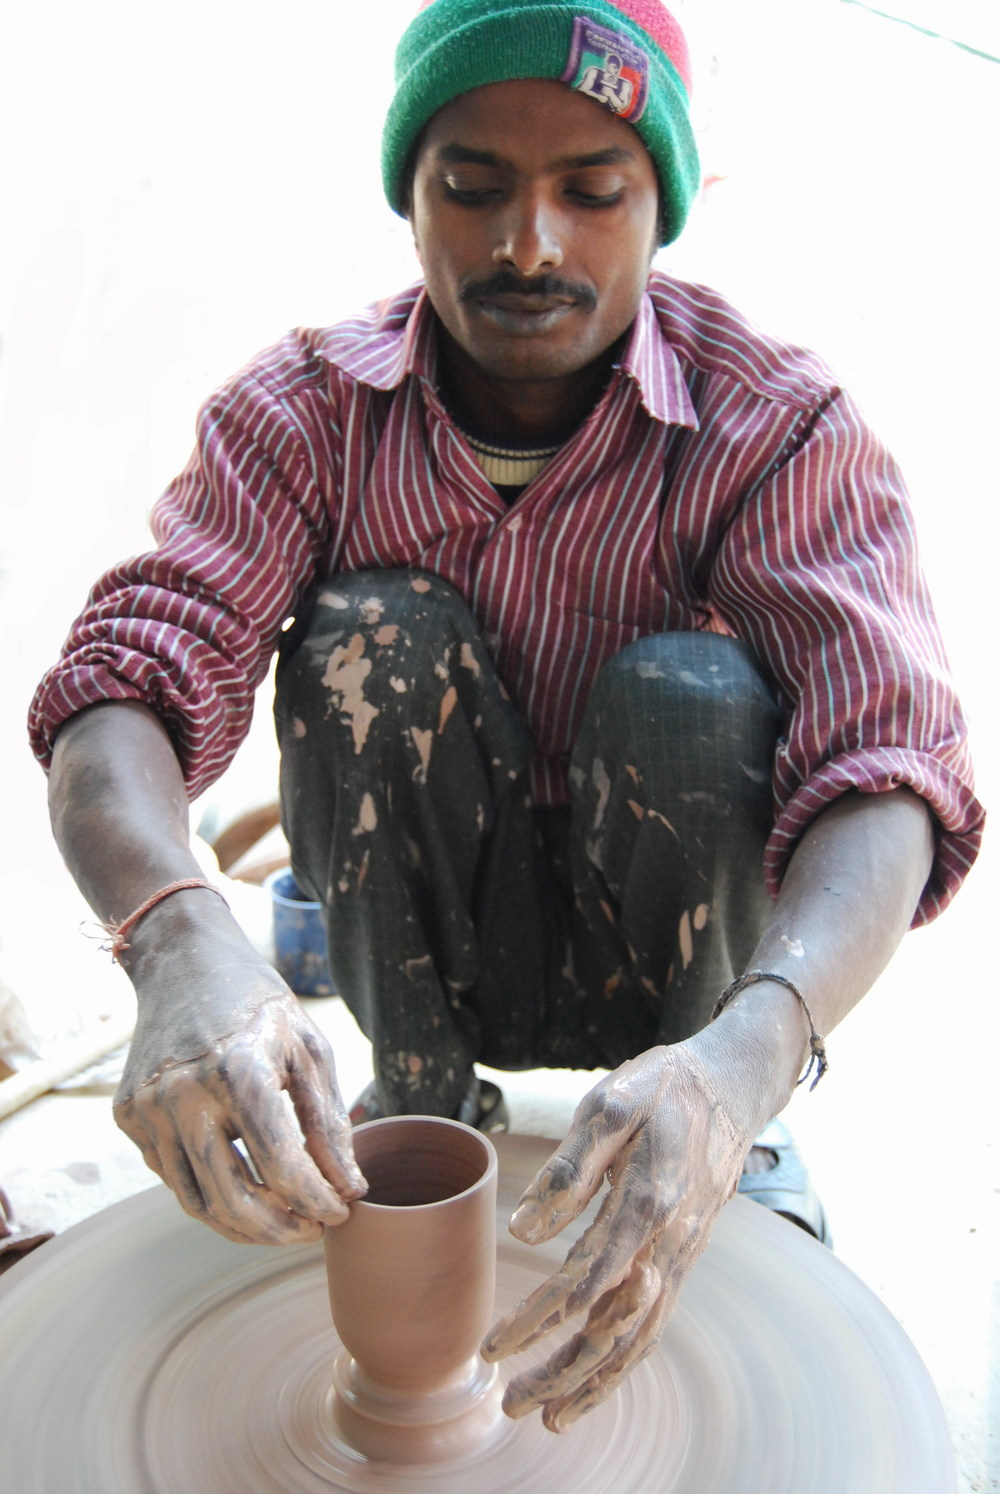 Banay Singh making beakers.